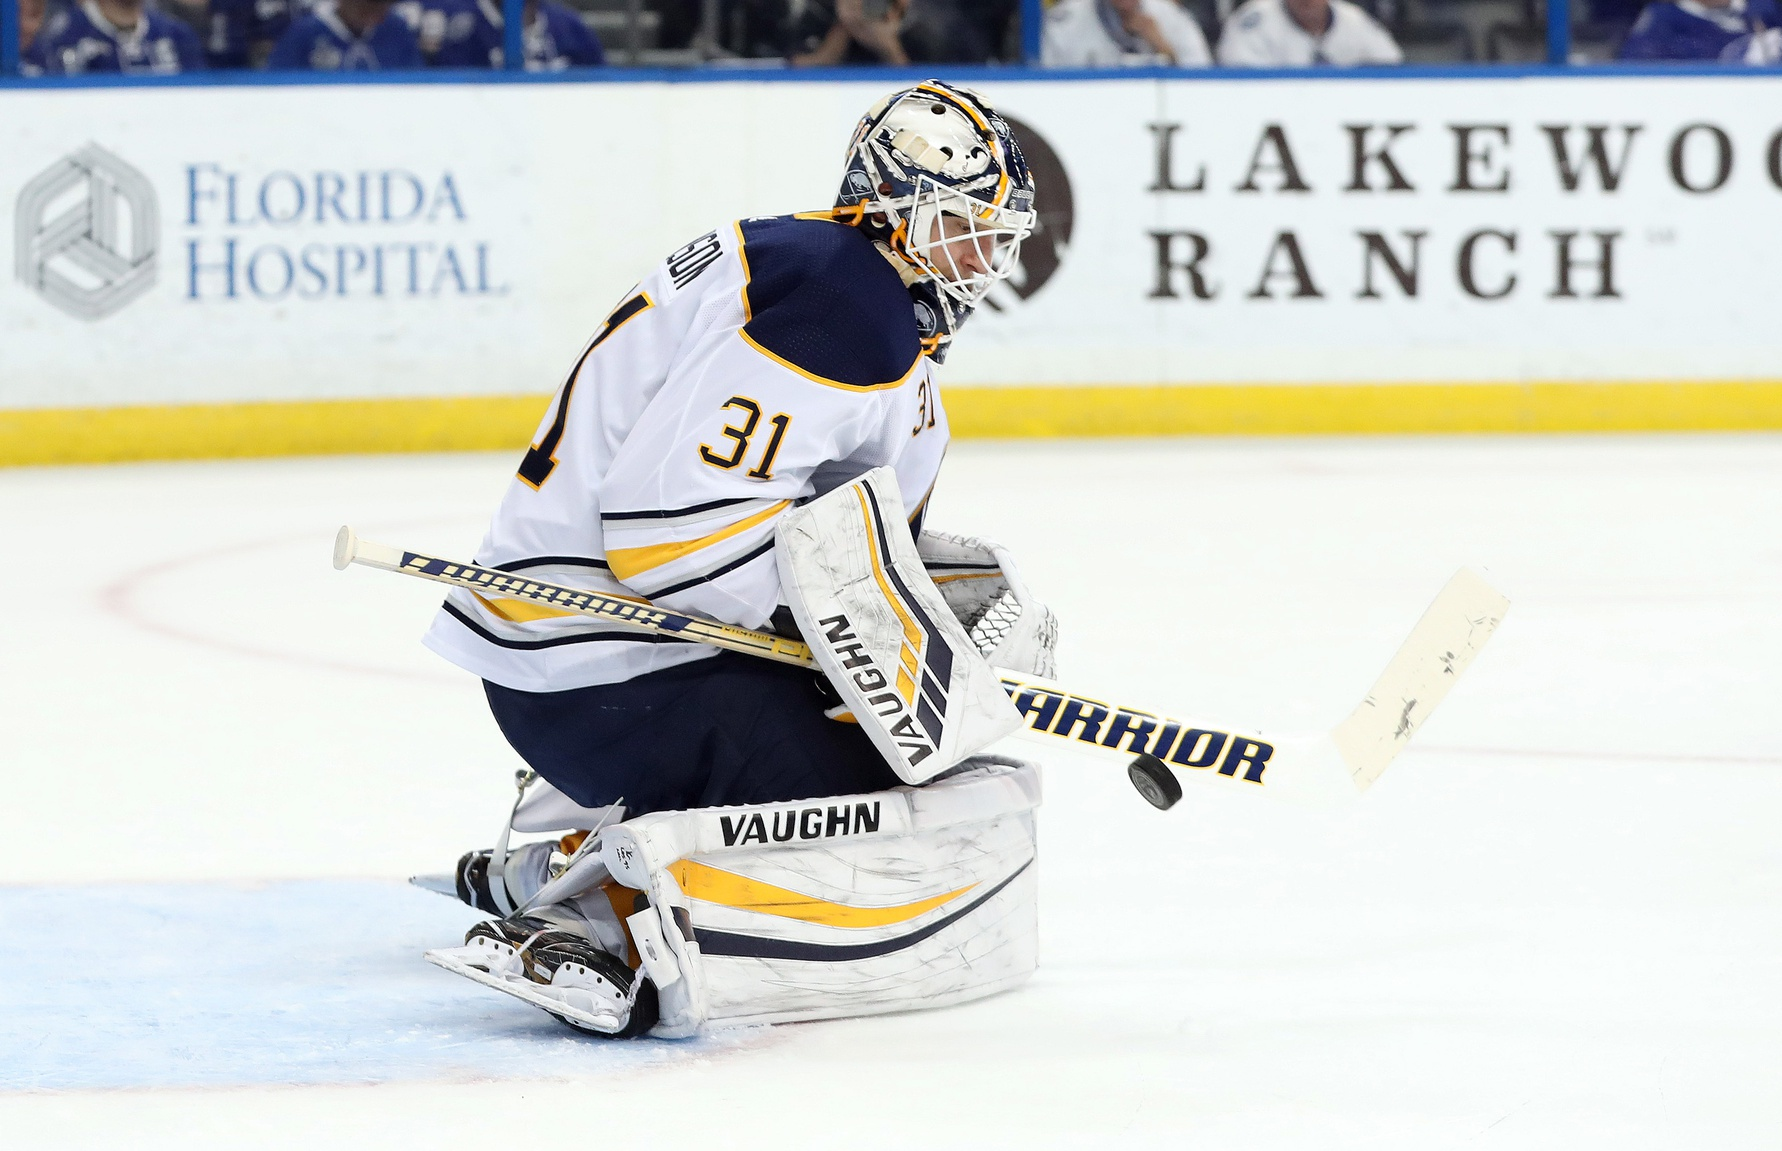 Blues sign backup goalie Chad Johnson to a one-year deal